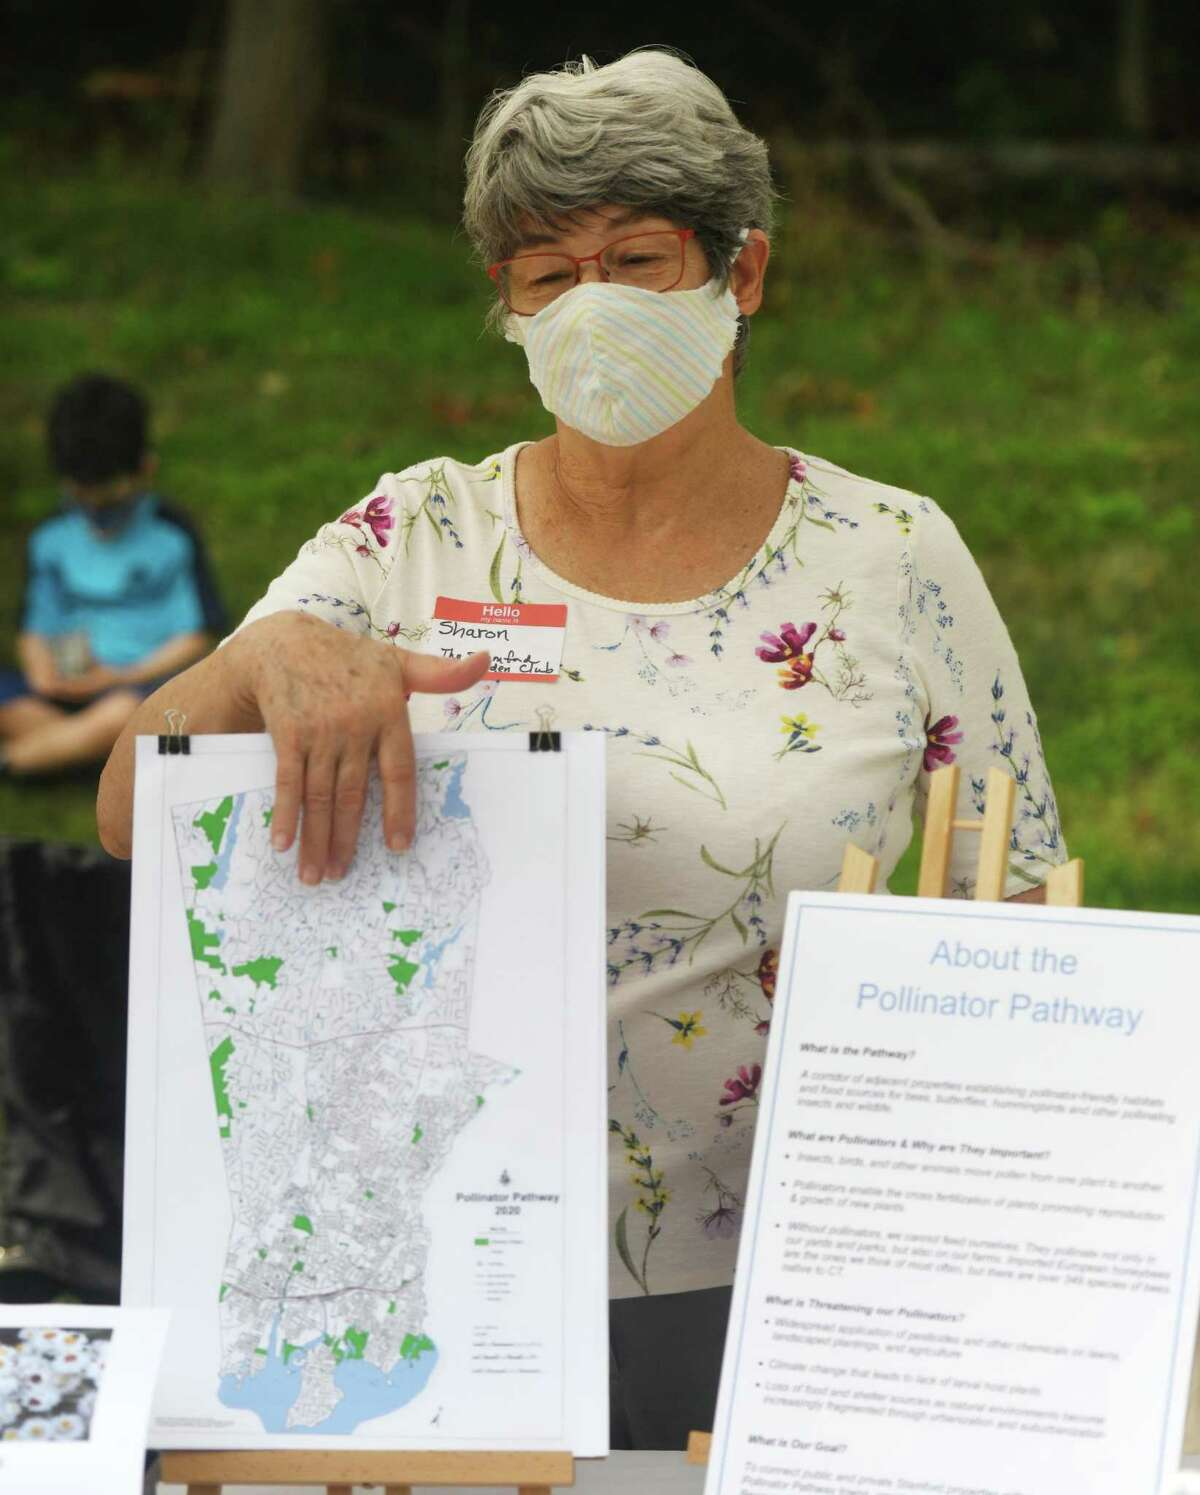 Sharon Larsen shows the map of connecting pollinator-friendly properties at the Stamford Pollinator Pathway stand at the Stamford Museum & Nature Center Sunday Farm Market in Stamford, Conn. Sunday, Aug. 23, 2020. The pollinator pathway project aims to create a contiguous corridor of pollinator-friendly properties in Stamford to connect to adjoining regions in Greenwich and Darien that continue throughout the state and into New York.